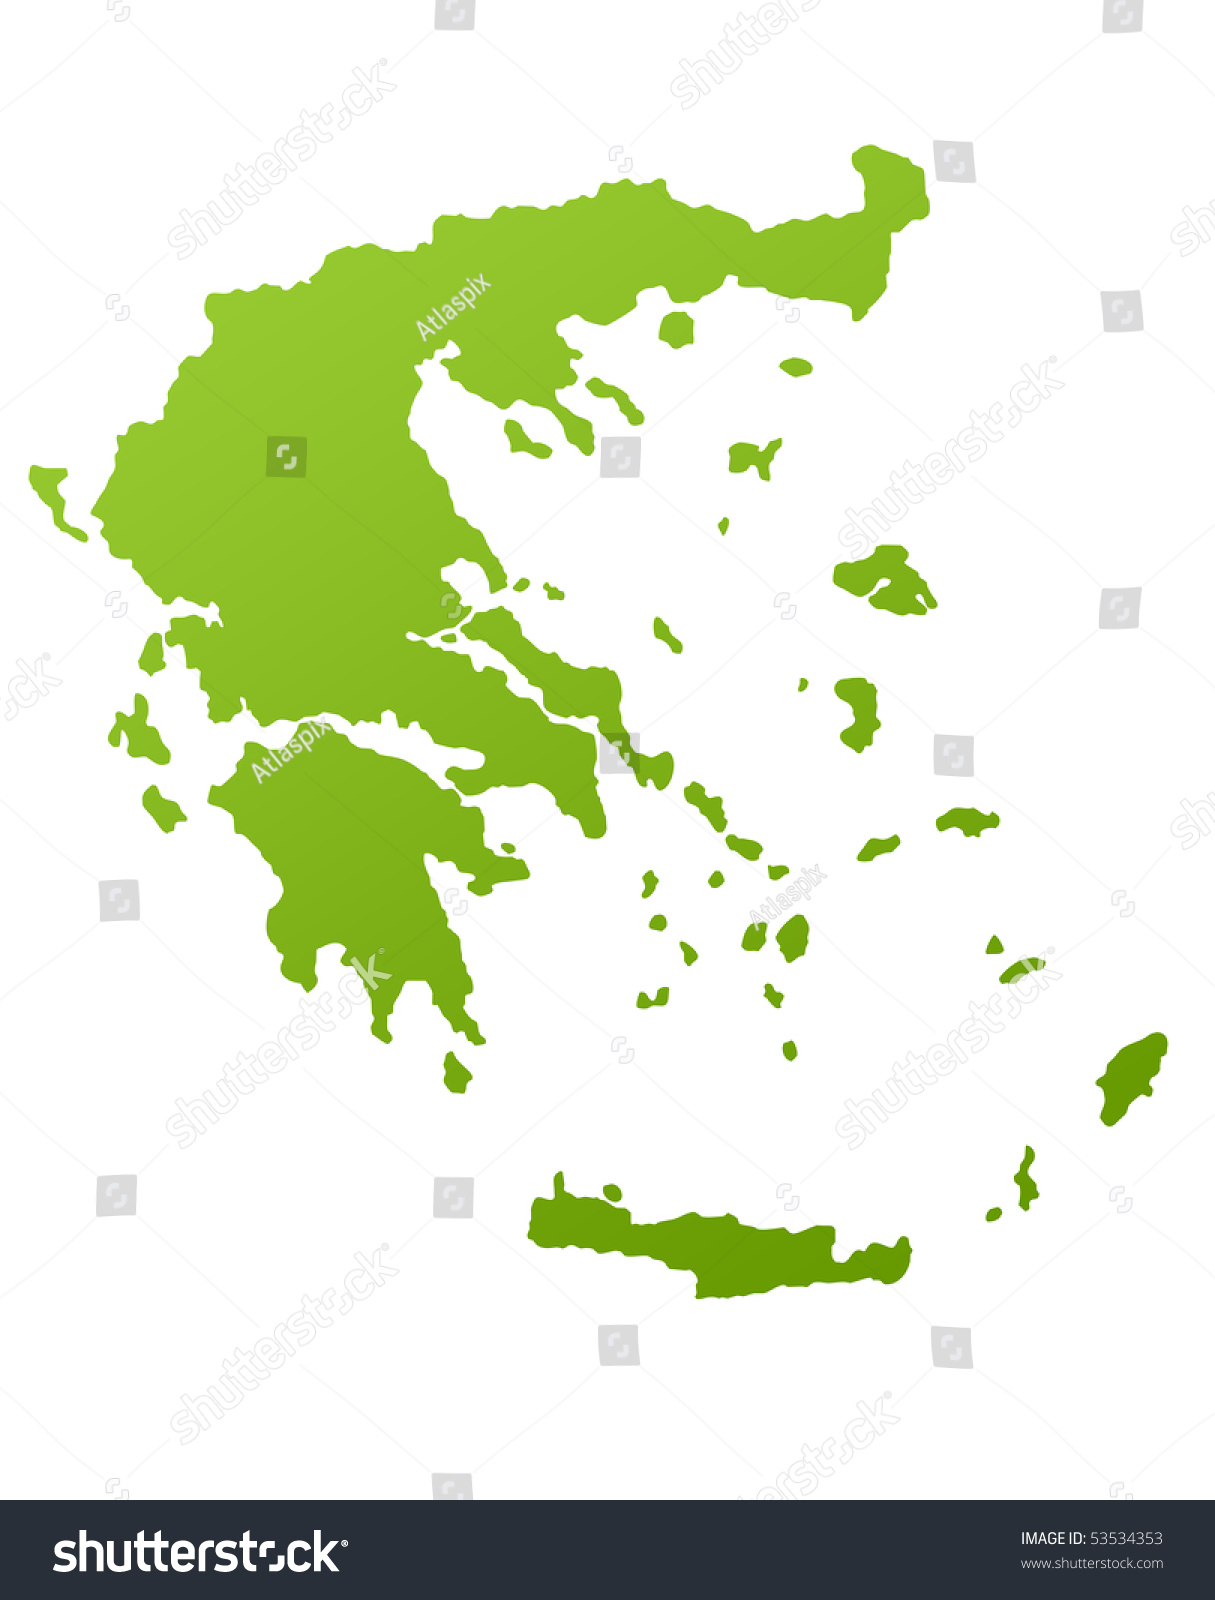 Greece greek islands map green isolated stock illustration 53534353 greece or greek islands map in green isolated on white background gumiabroncs Image collections